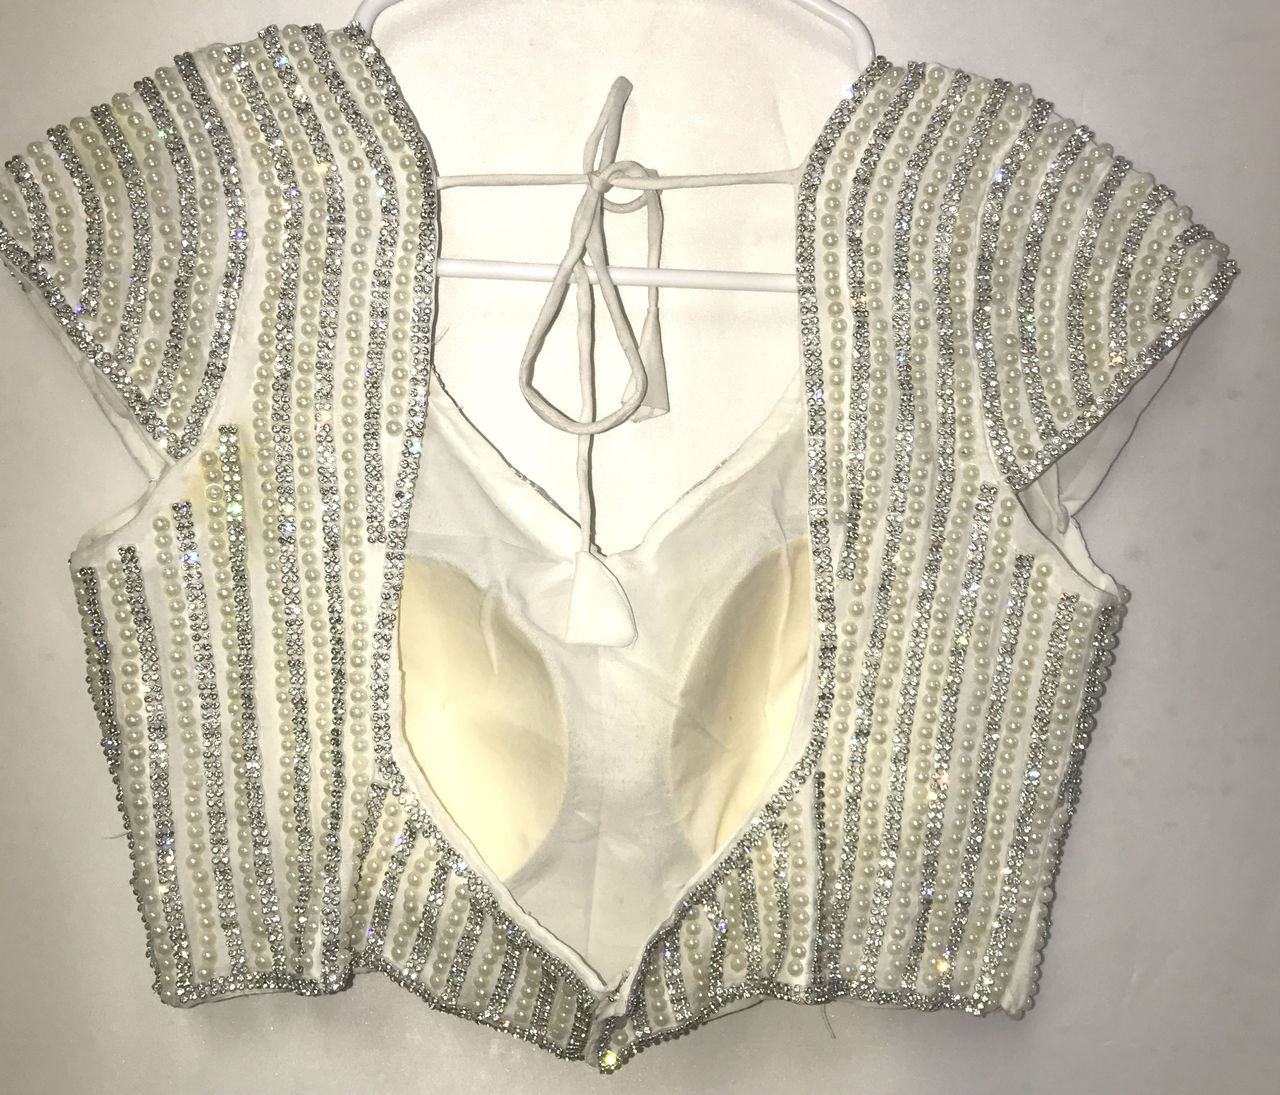 4fce804206699d PREMIUM SAREE BLOUSE Choli Padded Silver Beaded Sequence - $62.50 ...